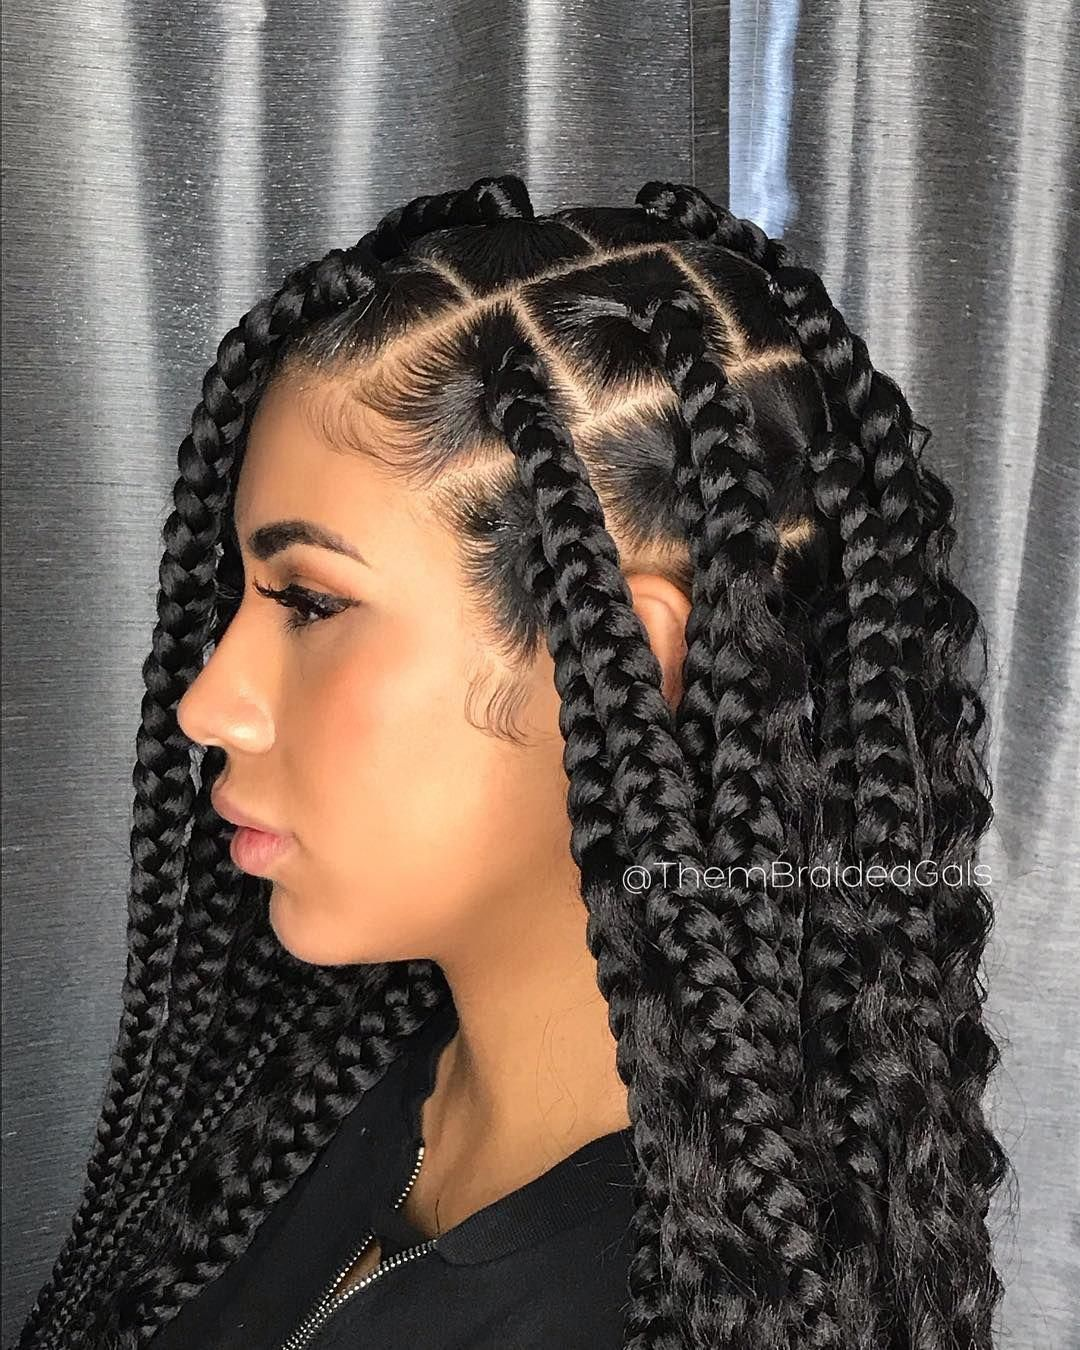 T H E M B R A I D E D G A L S On Instagram Large Goddess Box Braids My Clients Are So Gorgeous Box Braids Hairstyles Hair Styles Braided Hairstyles Detailed diy knotless goddess box braids (2 methods). box braids hairstyles